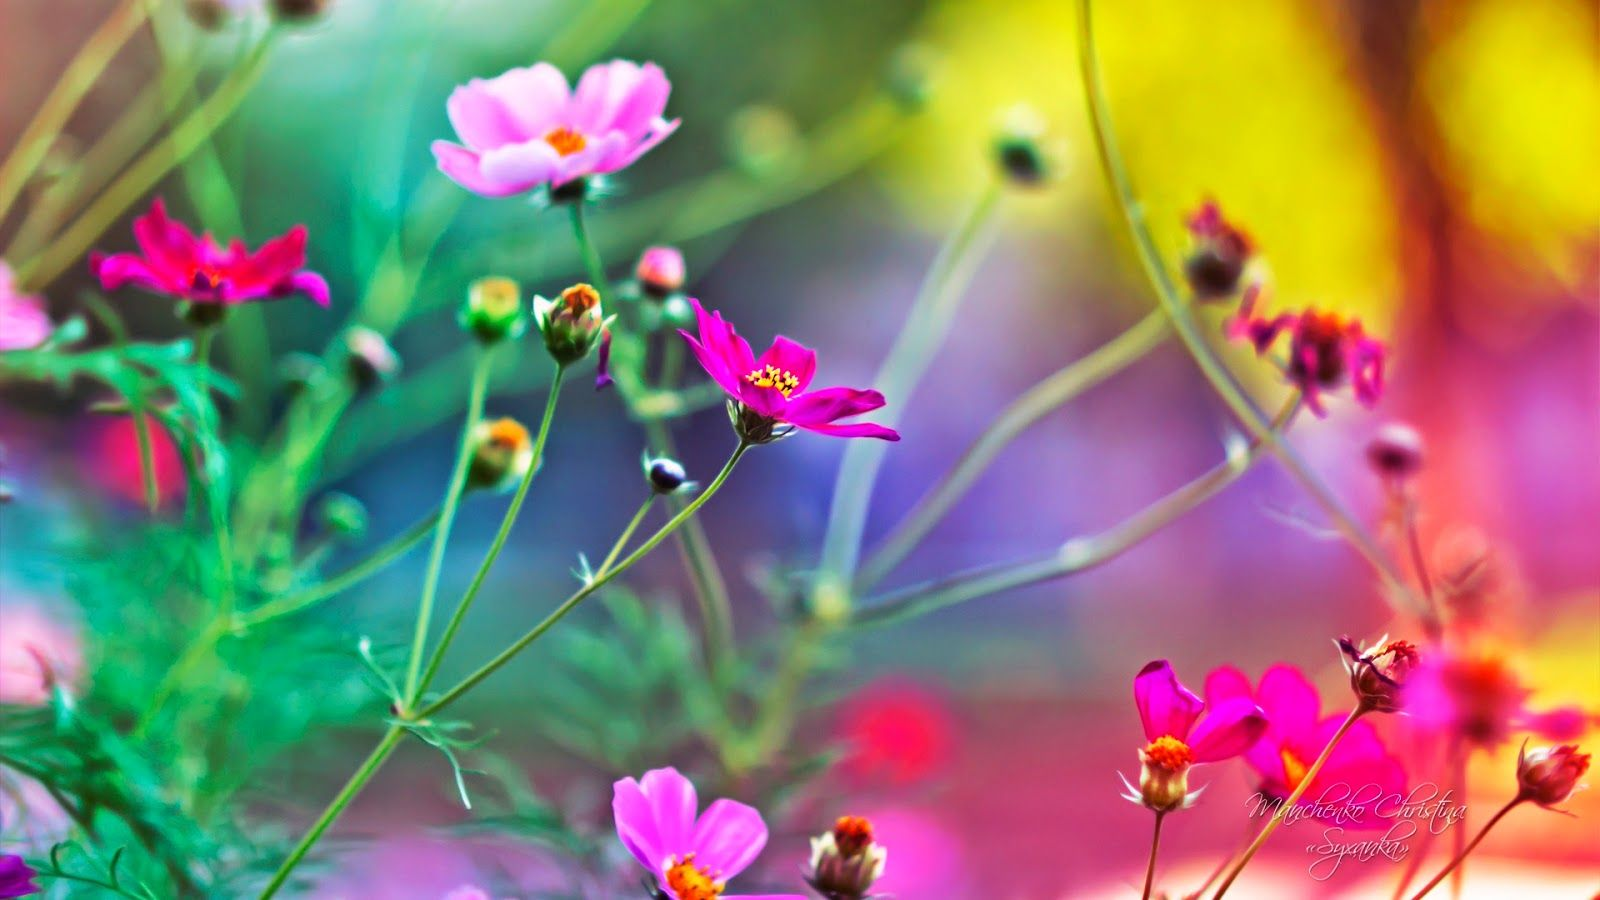 Hd Flower Wallpapers On Wallpaperdog